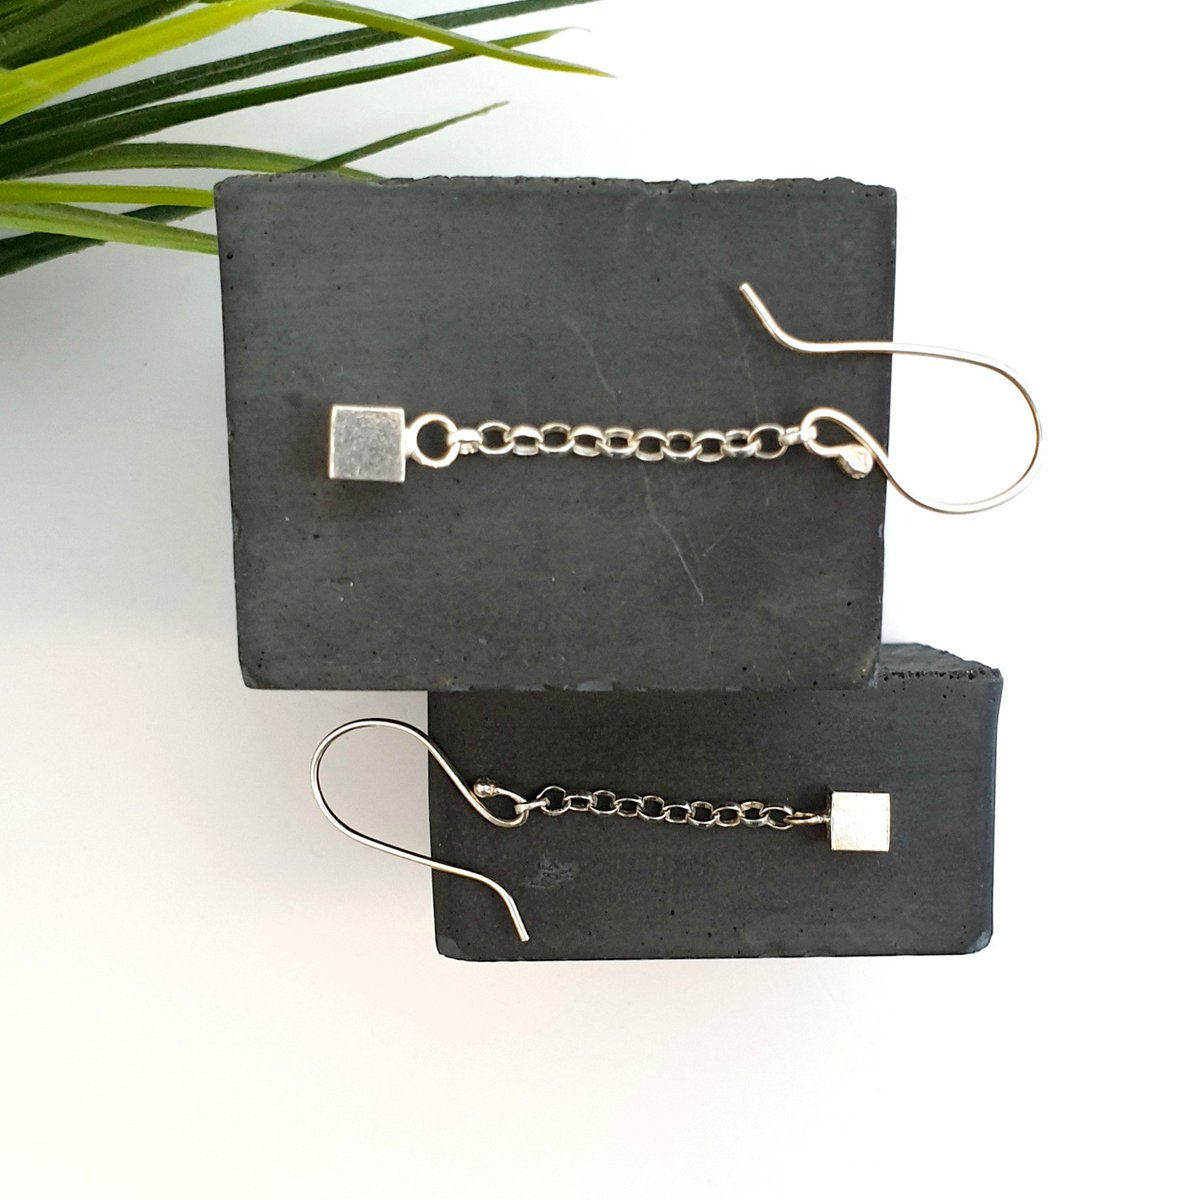 I'd love to know what you think of these silver dangly cube earrings!   #handmadehour #CraftBizParty #UKCraft #sbs<br>http://pic.twitter.com/CpOWypyCpx